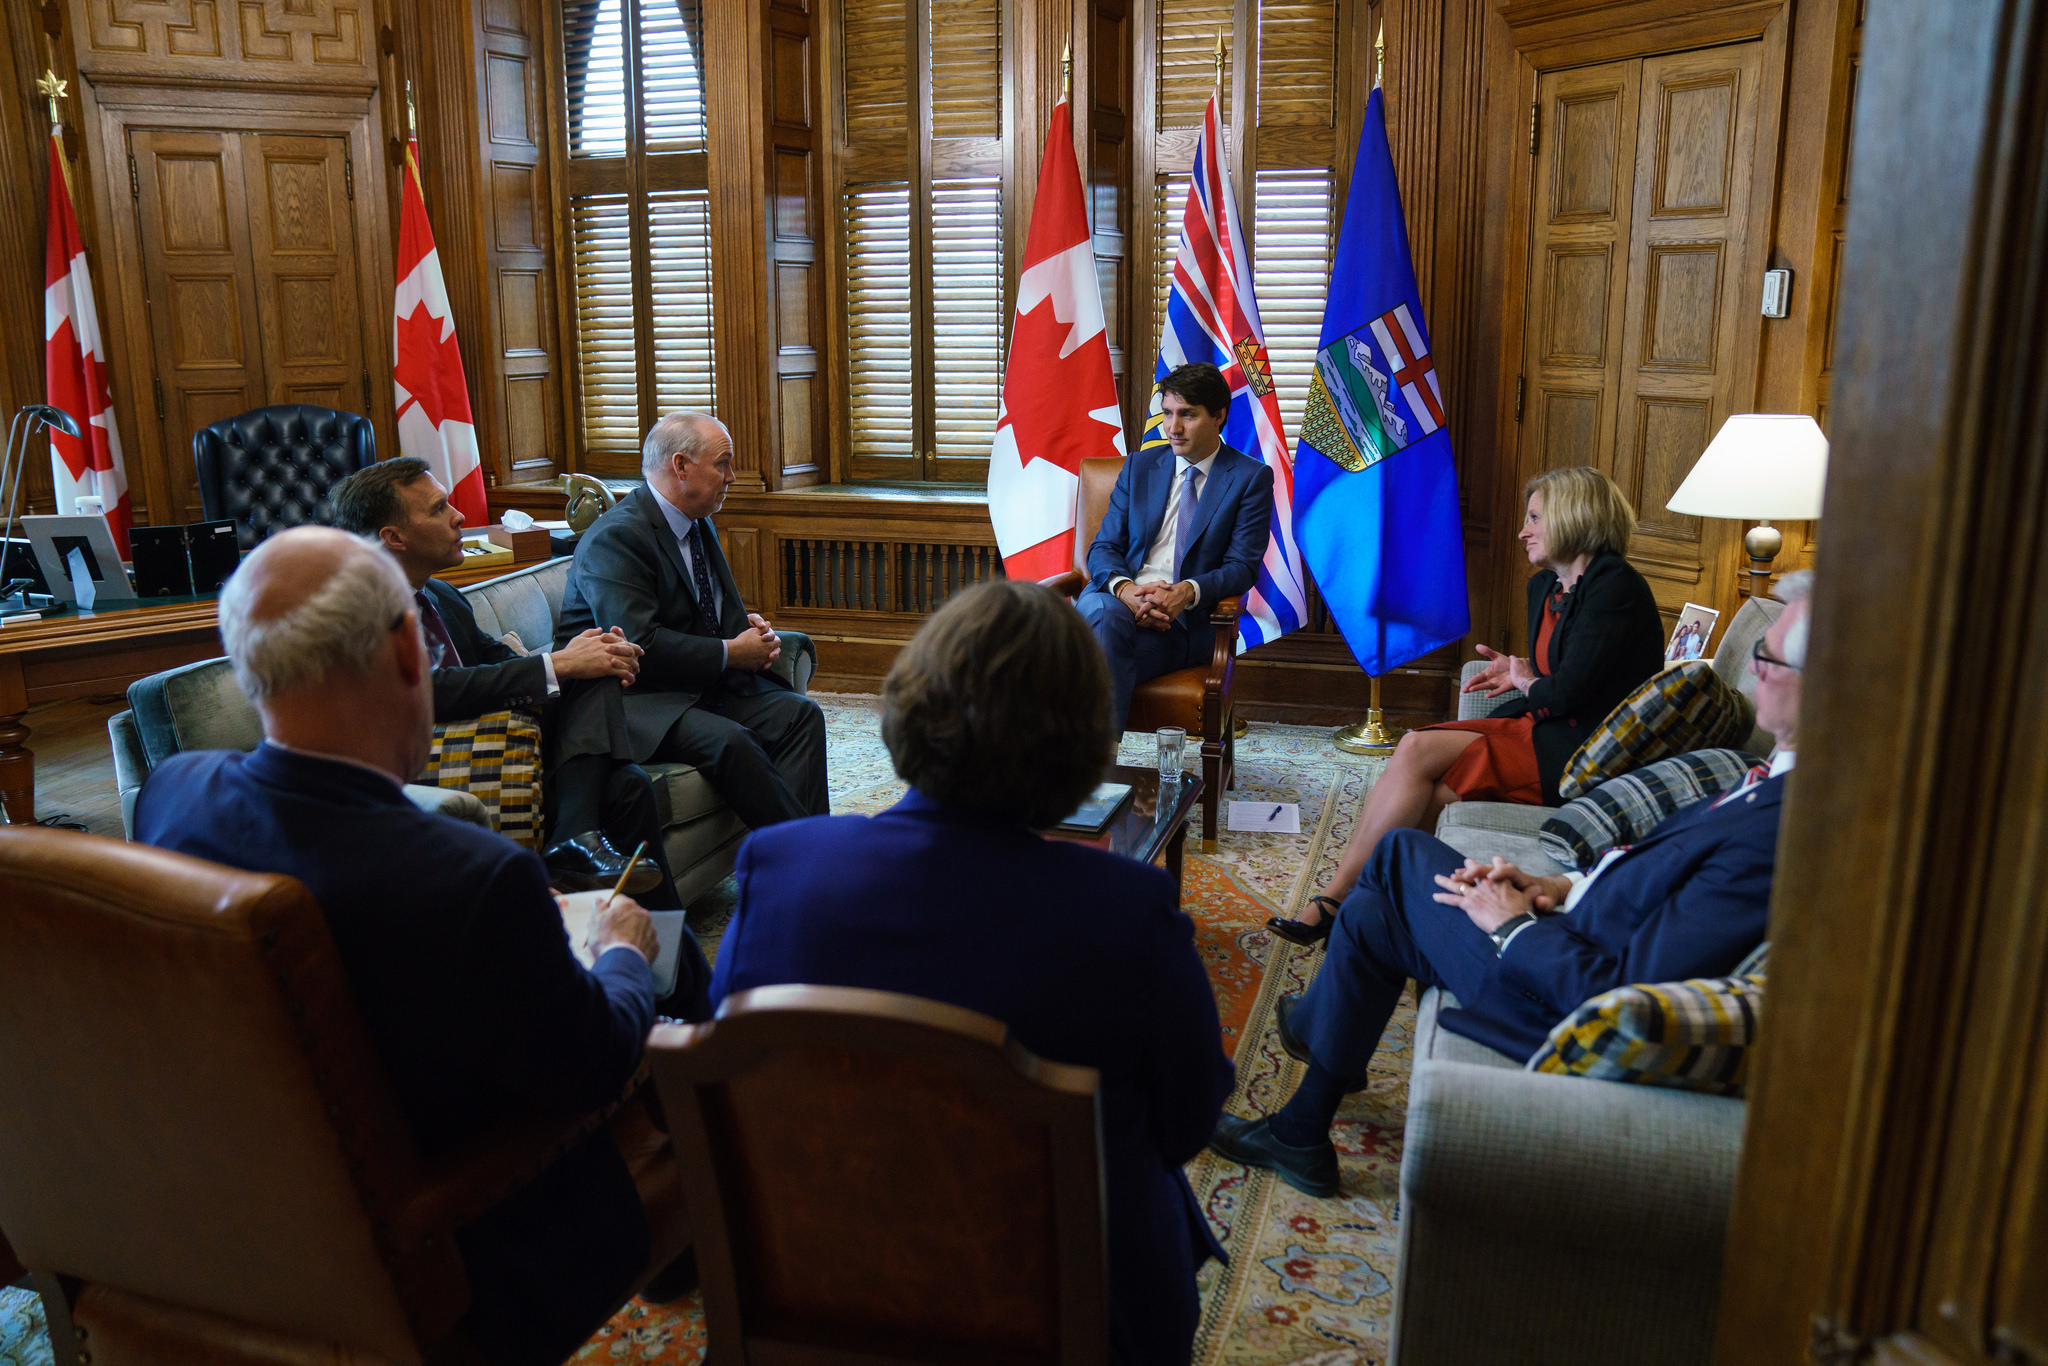 Horgan Notley Trudeau Meeting (Photo: Prime Minister's Office)